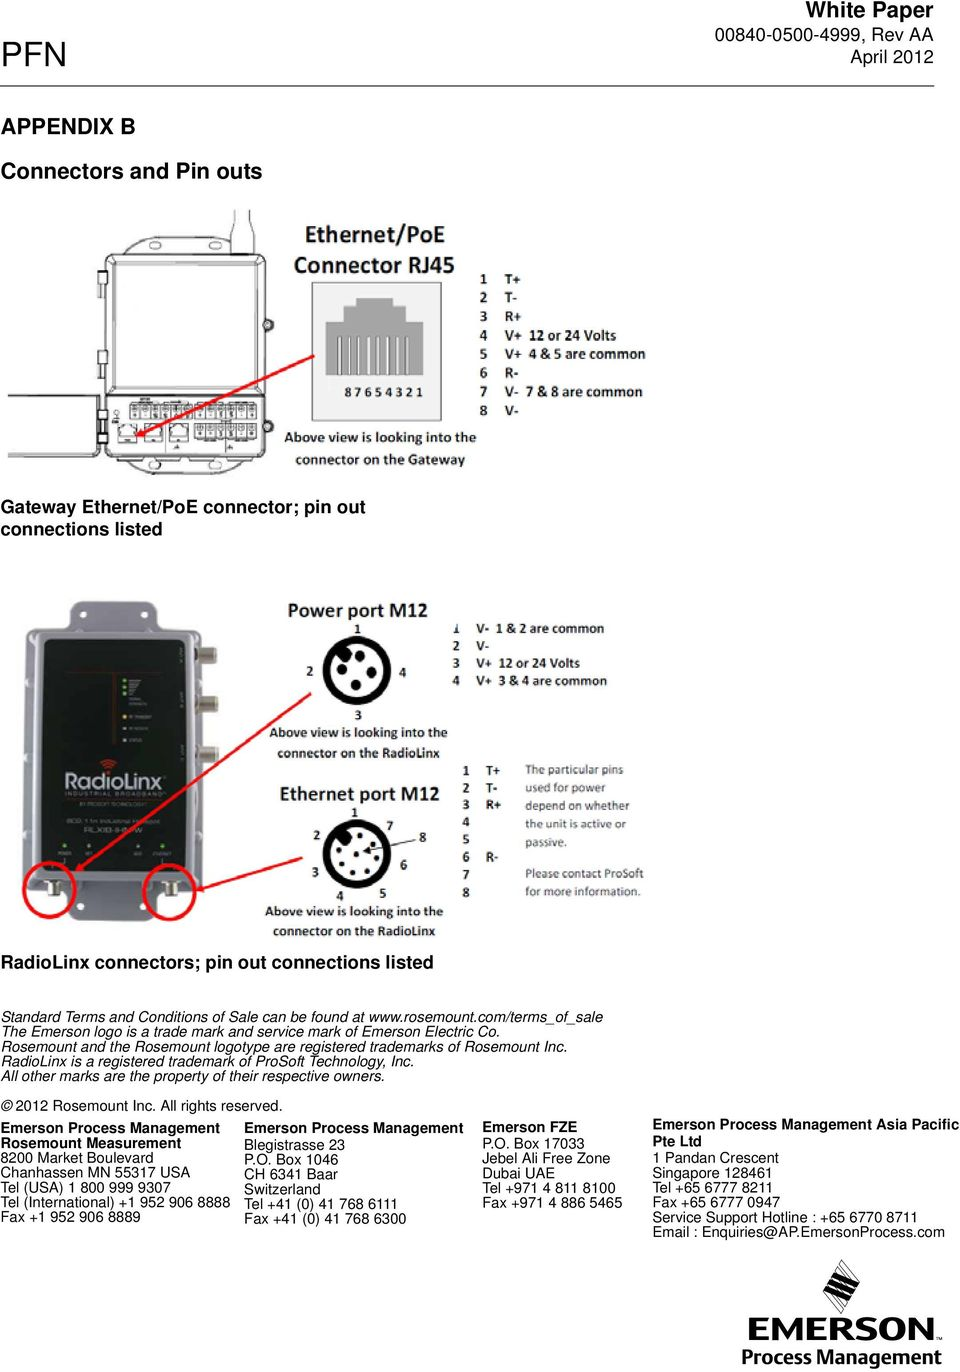 Techniques For Interconnecting Smart Wireless Gateways To Prosoft Poweroverethernet Poe On Industrialbased Networking Fig 2 Rosemount And The Logotype Are Registered Trademarks Of Inc Radiolinx Is A